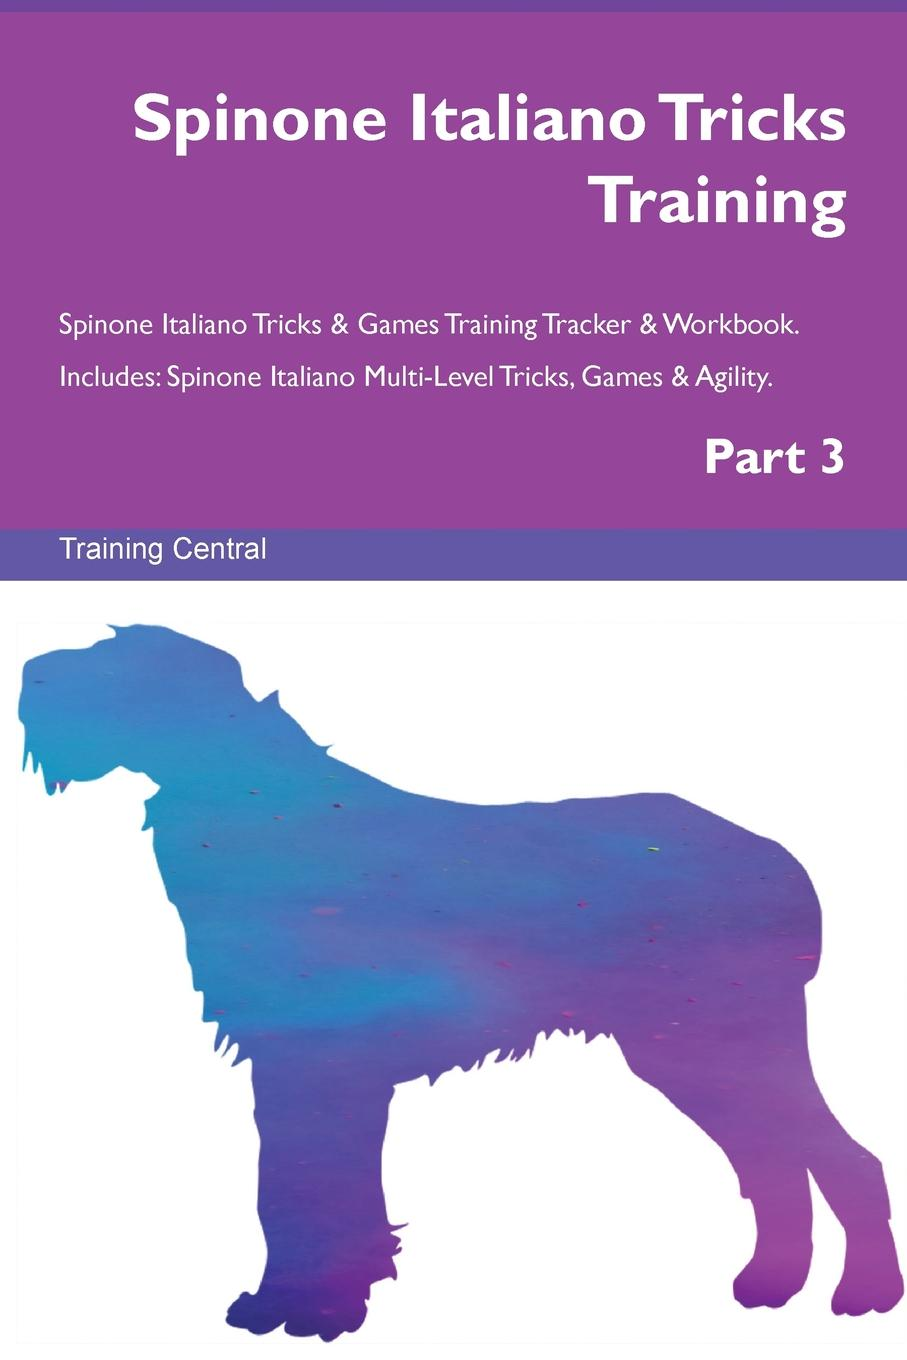 Training Central Spinone Italiano Tricks Training Spinone Italiano Tricks . Games Training Tracker . Workbook. Includes. Spinone Italiano Multi-Level Tricks, Games . Agility. Part 3 this book loves you